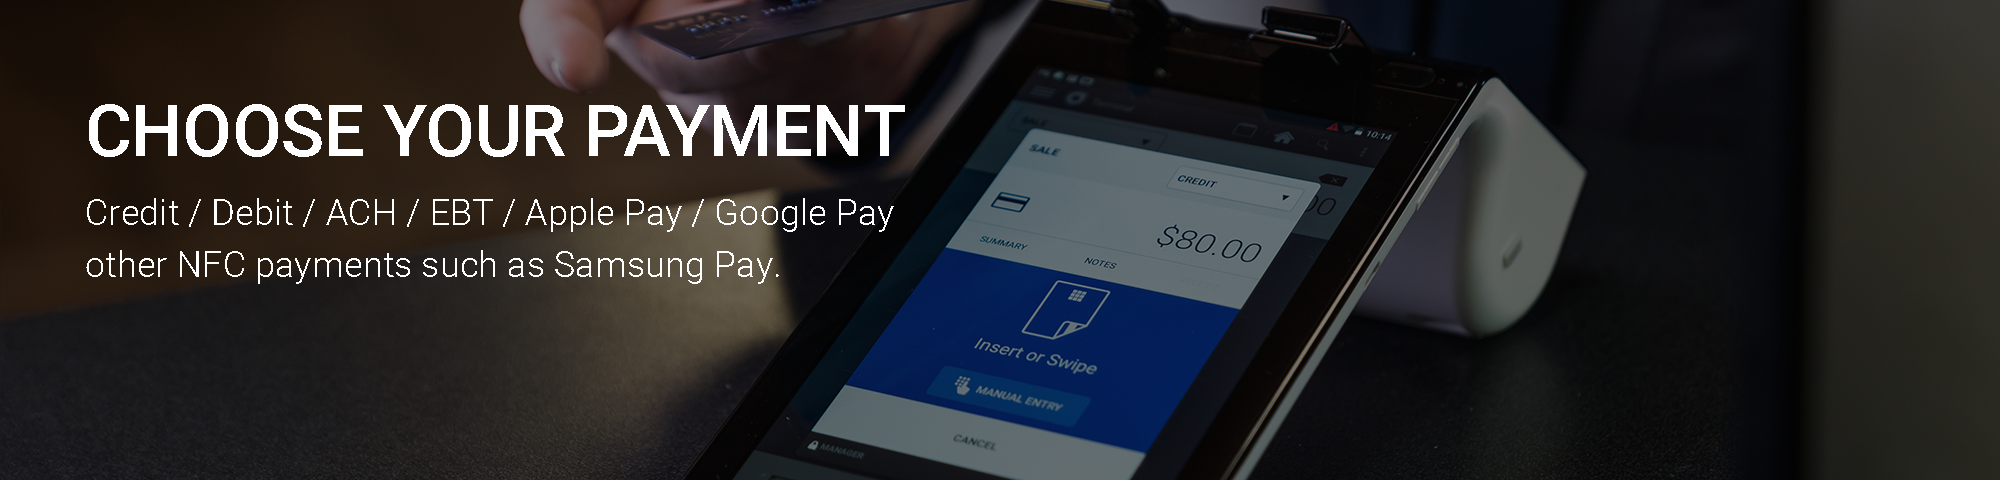 Choose Your Payment Credit / Debit / ACH / EBT / Apple Pay / Google Pay other NFC payments such as Samsung Pay.